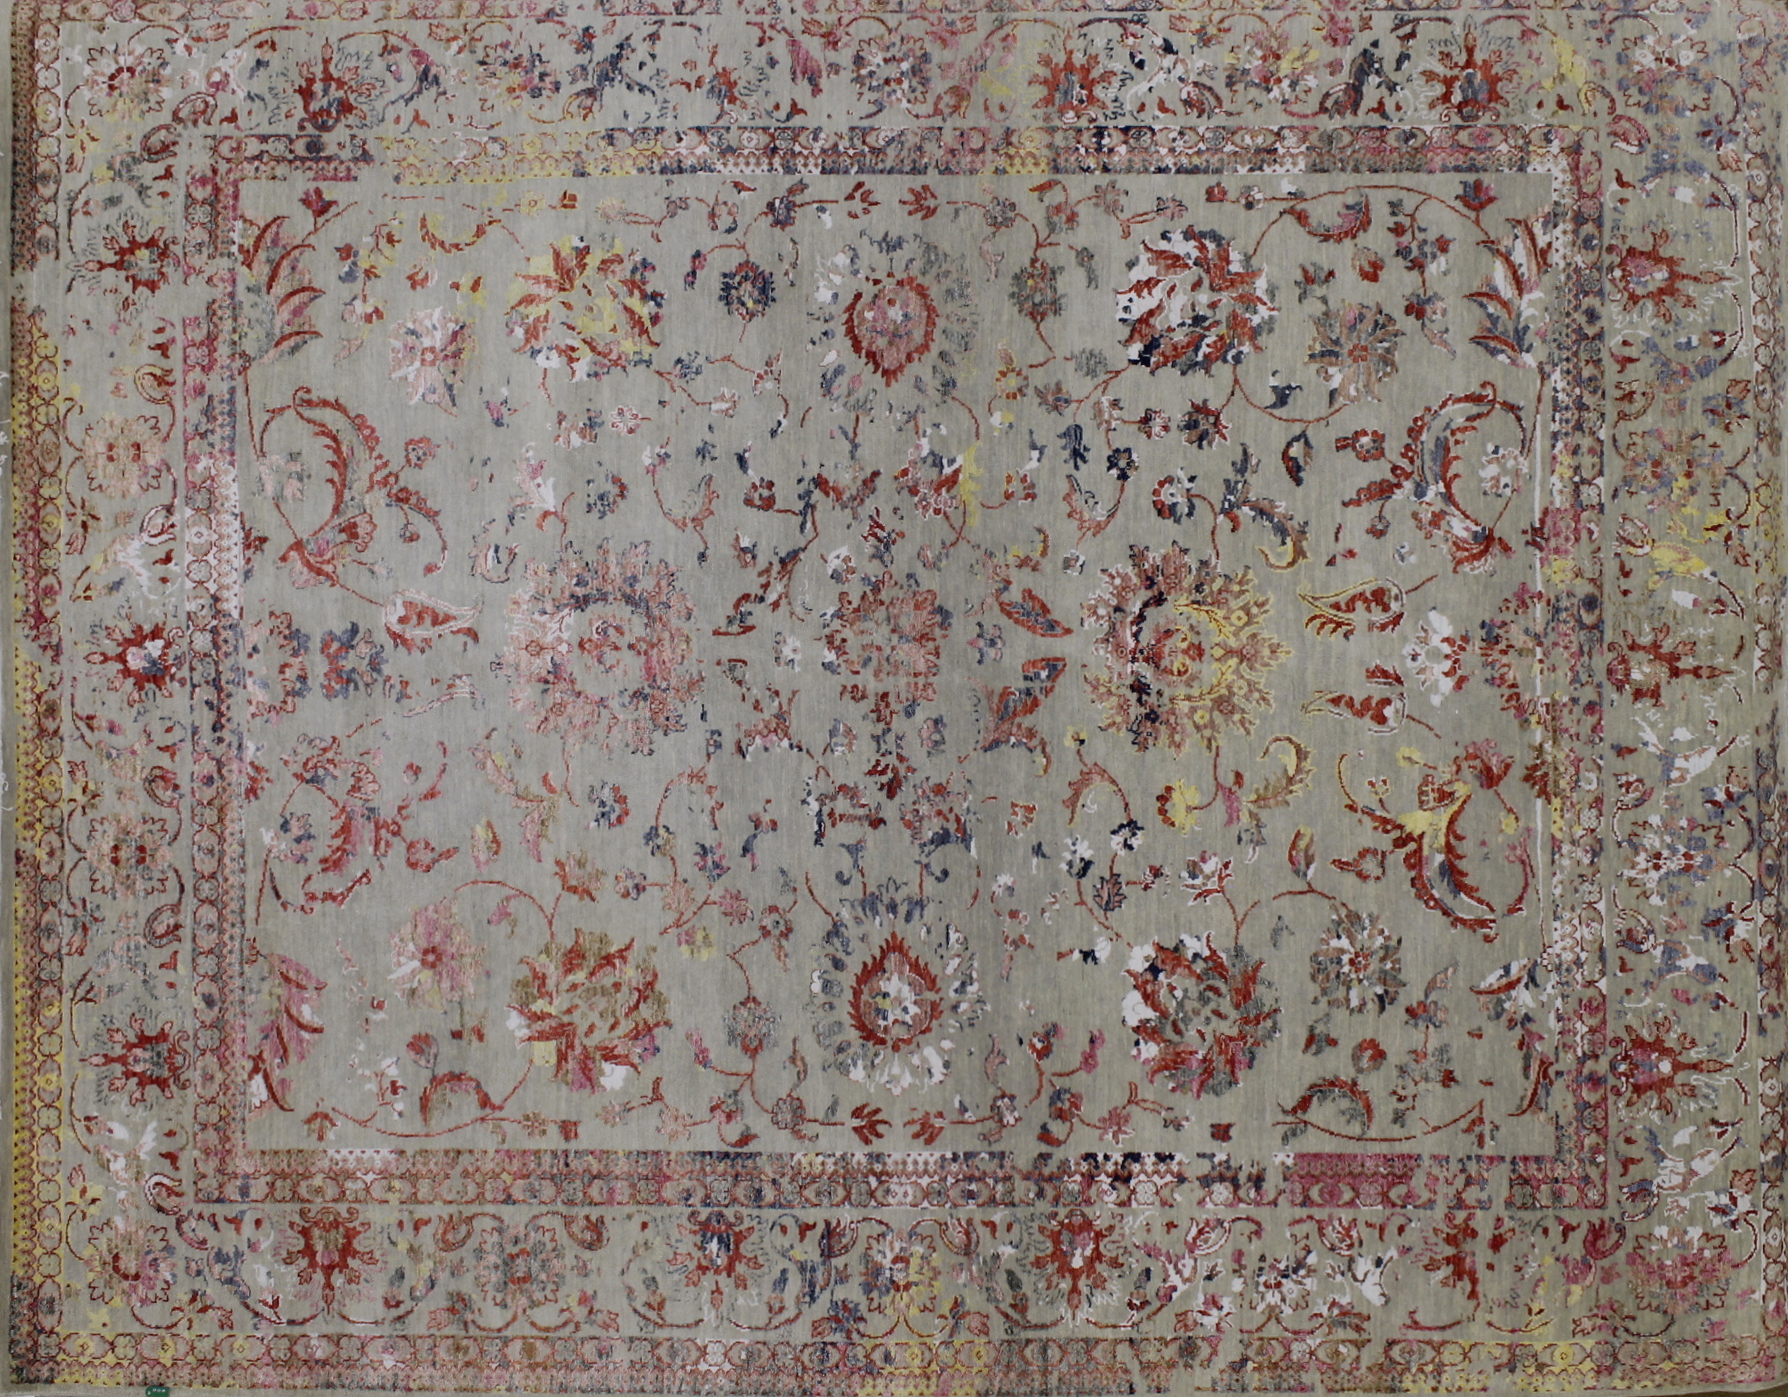 8x10 Contemporary Hand Knotted Wool Area Rug - MR022392